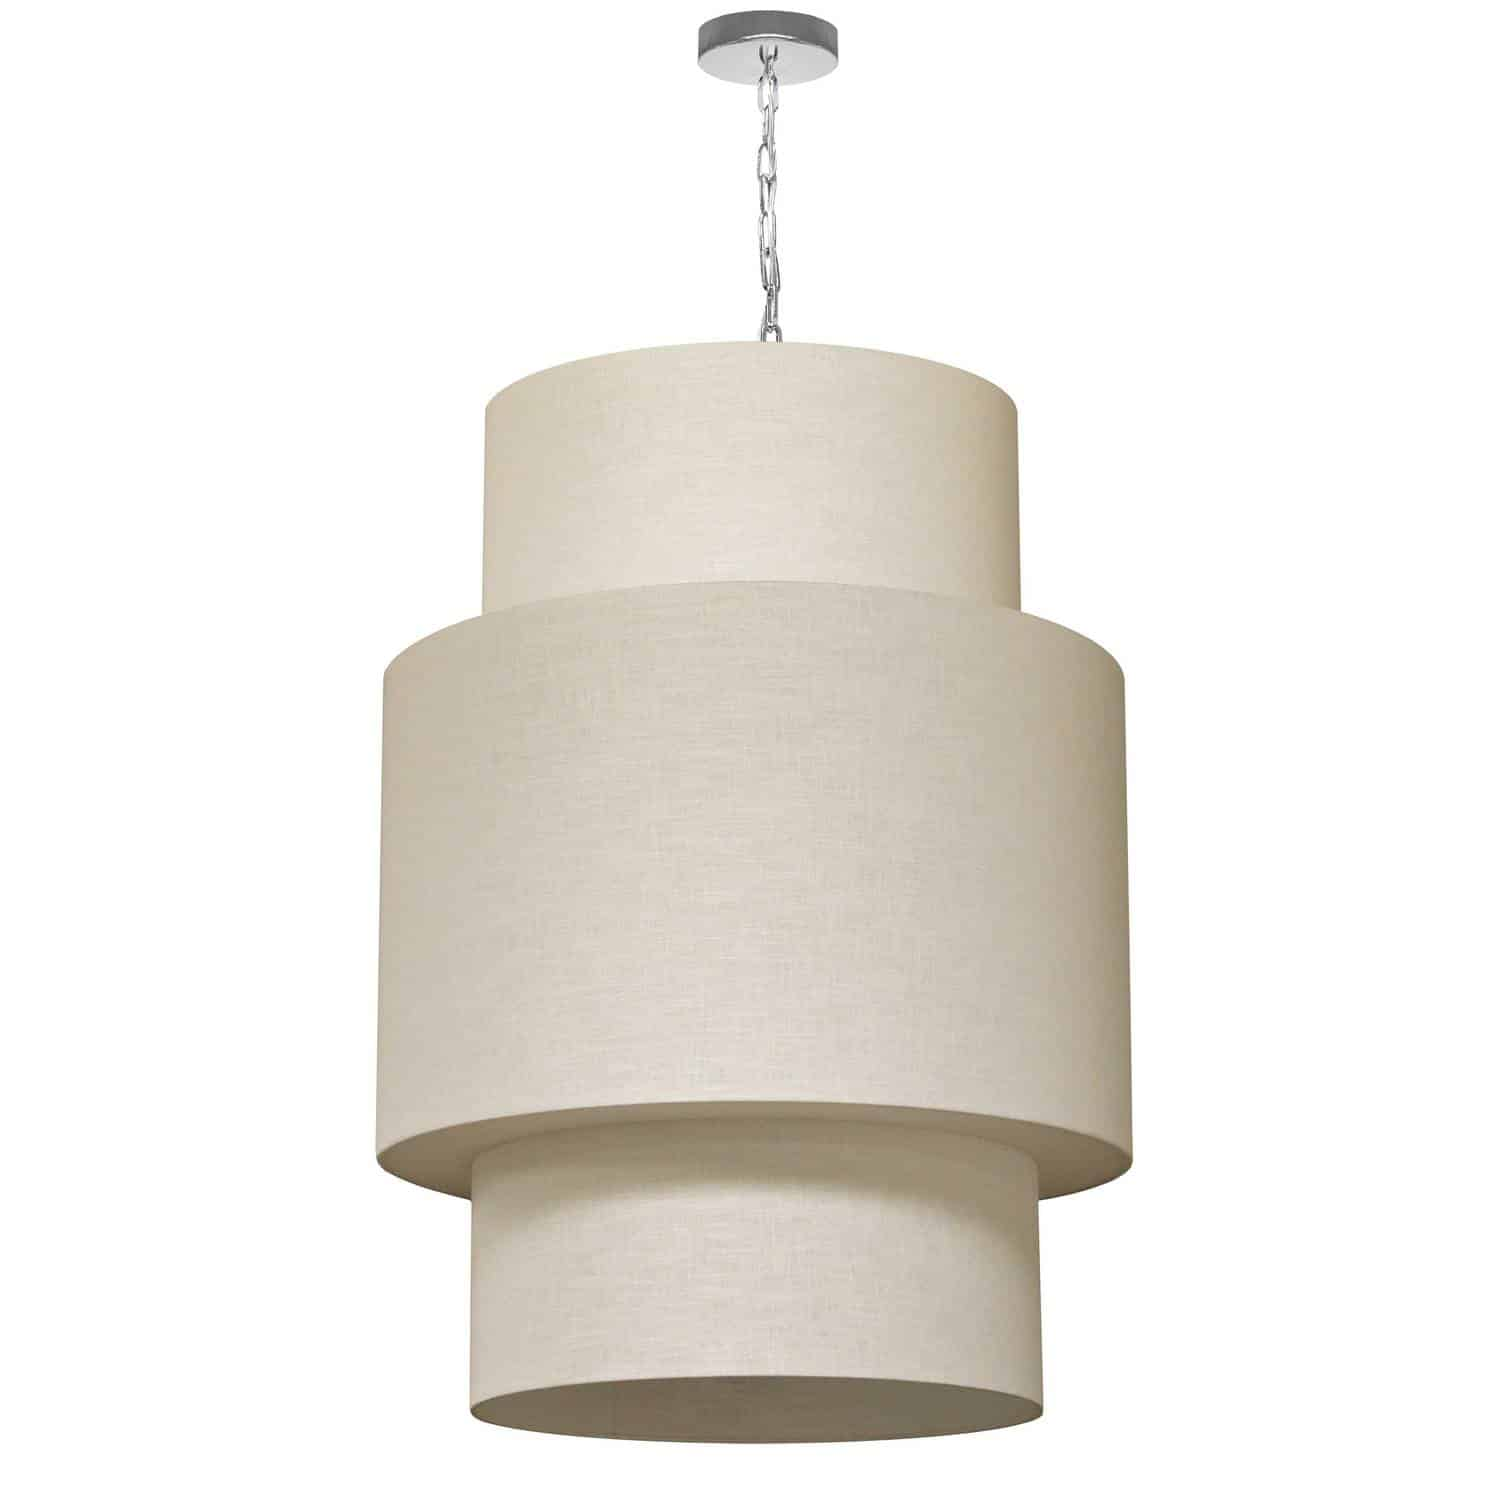 7 Light 3 Tiers Drum Linen Milano Cream, Acrylic Diffuser,Polished Chrome